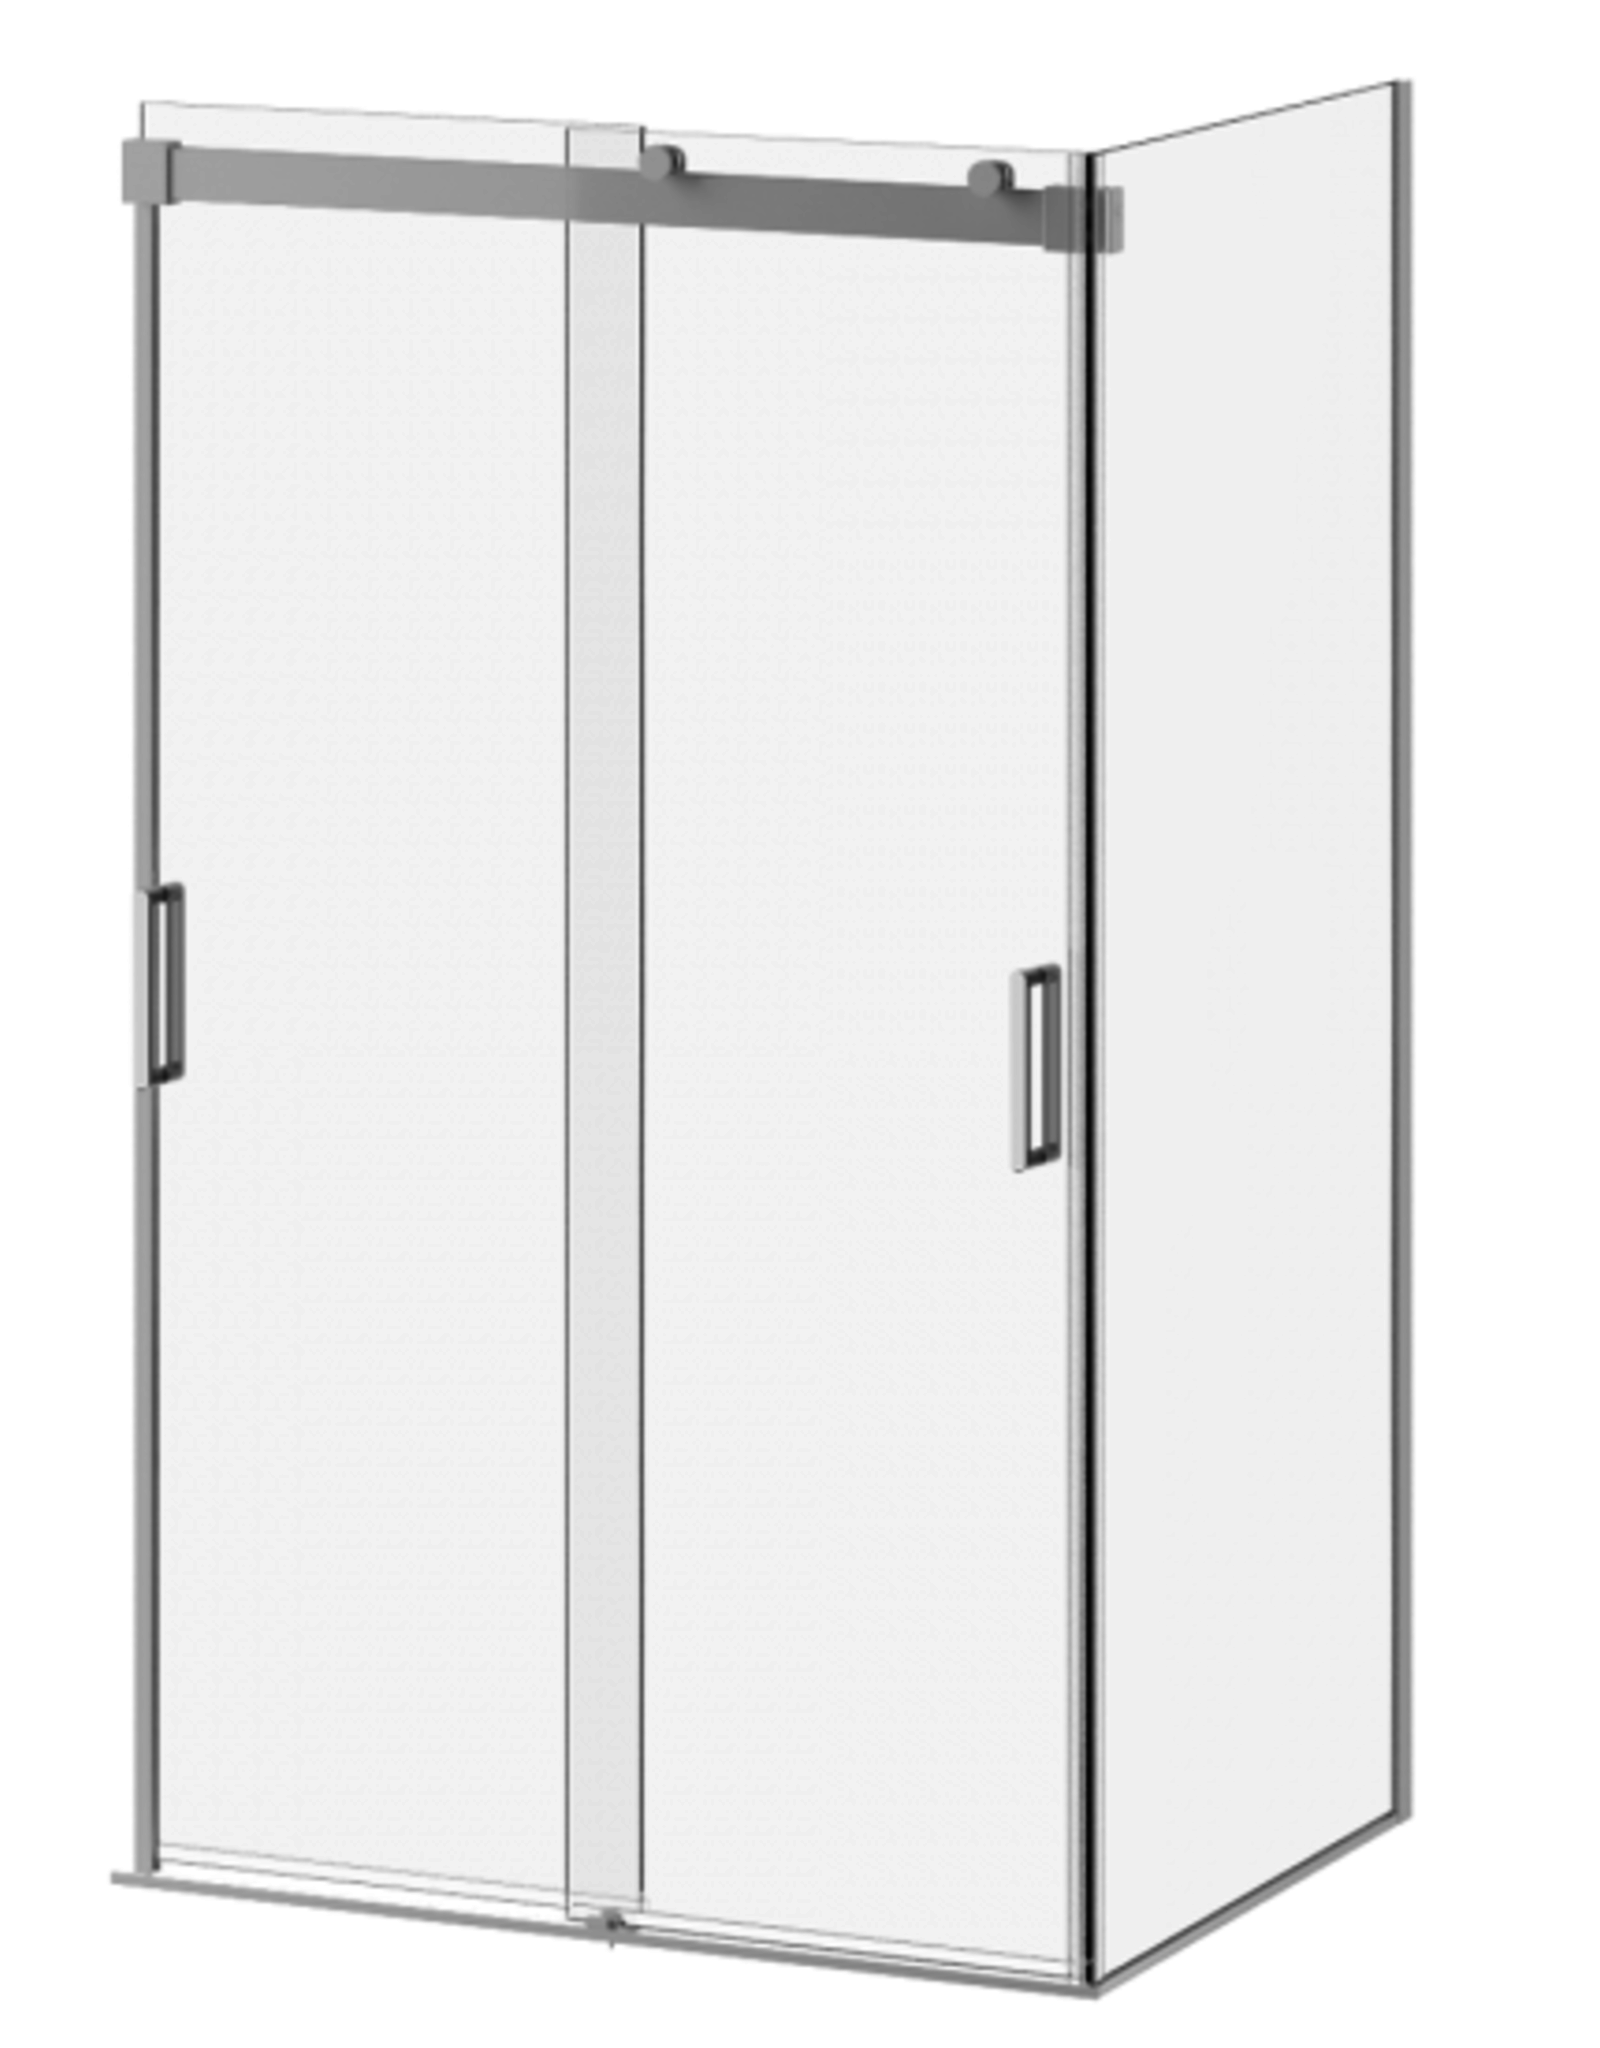 "Kalia Kalia Akcess Frameless 2-Panel Sliding Shower Door 48"" x 36"" Corner Install- Chrome/Clear"